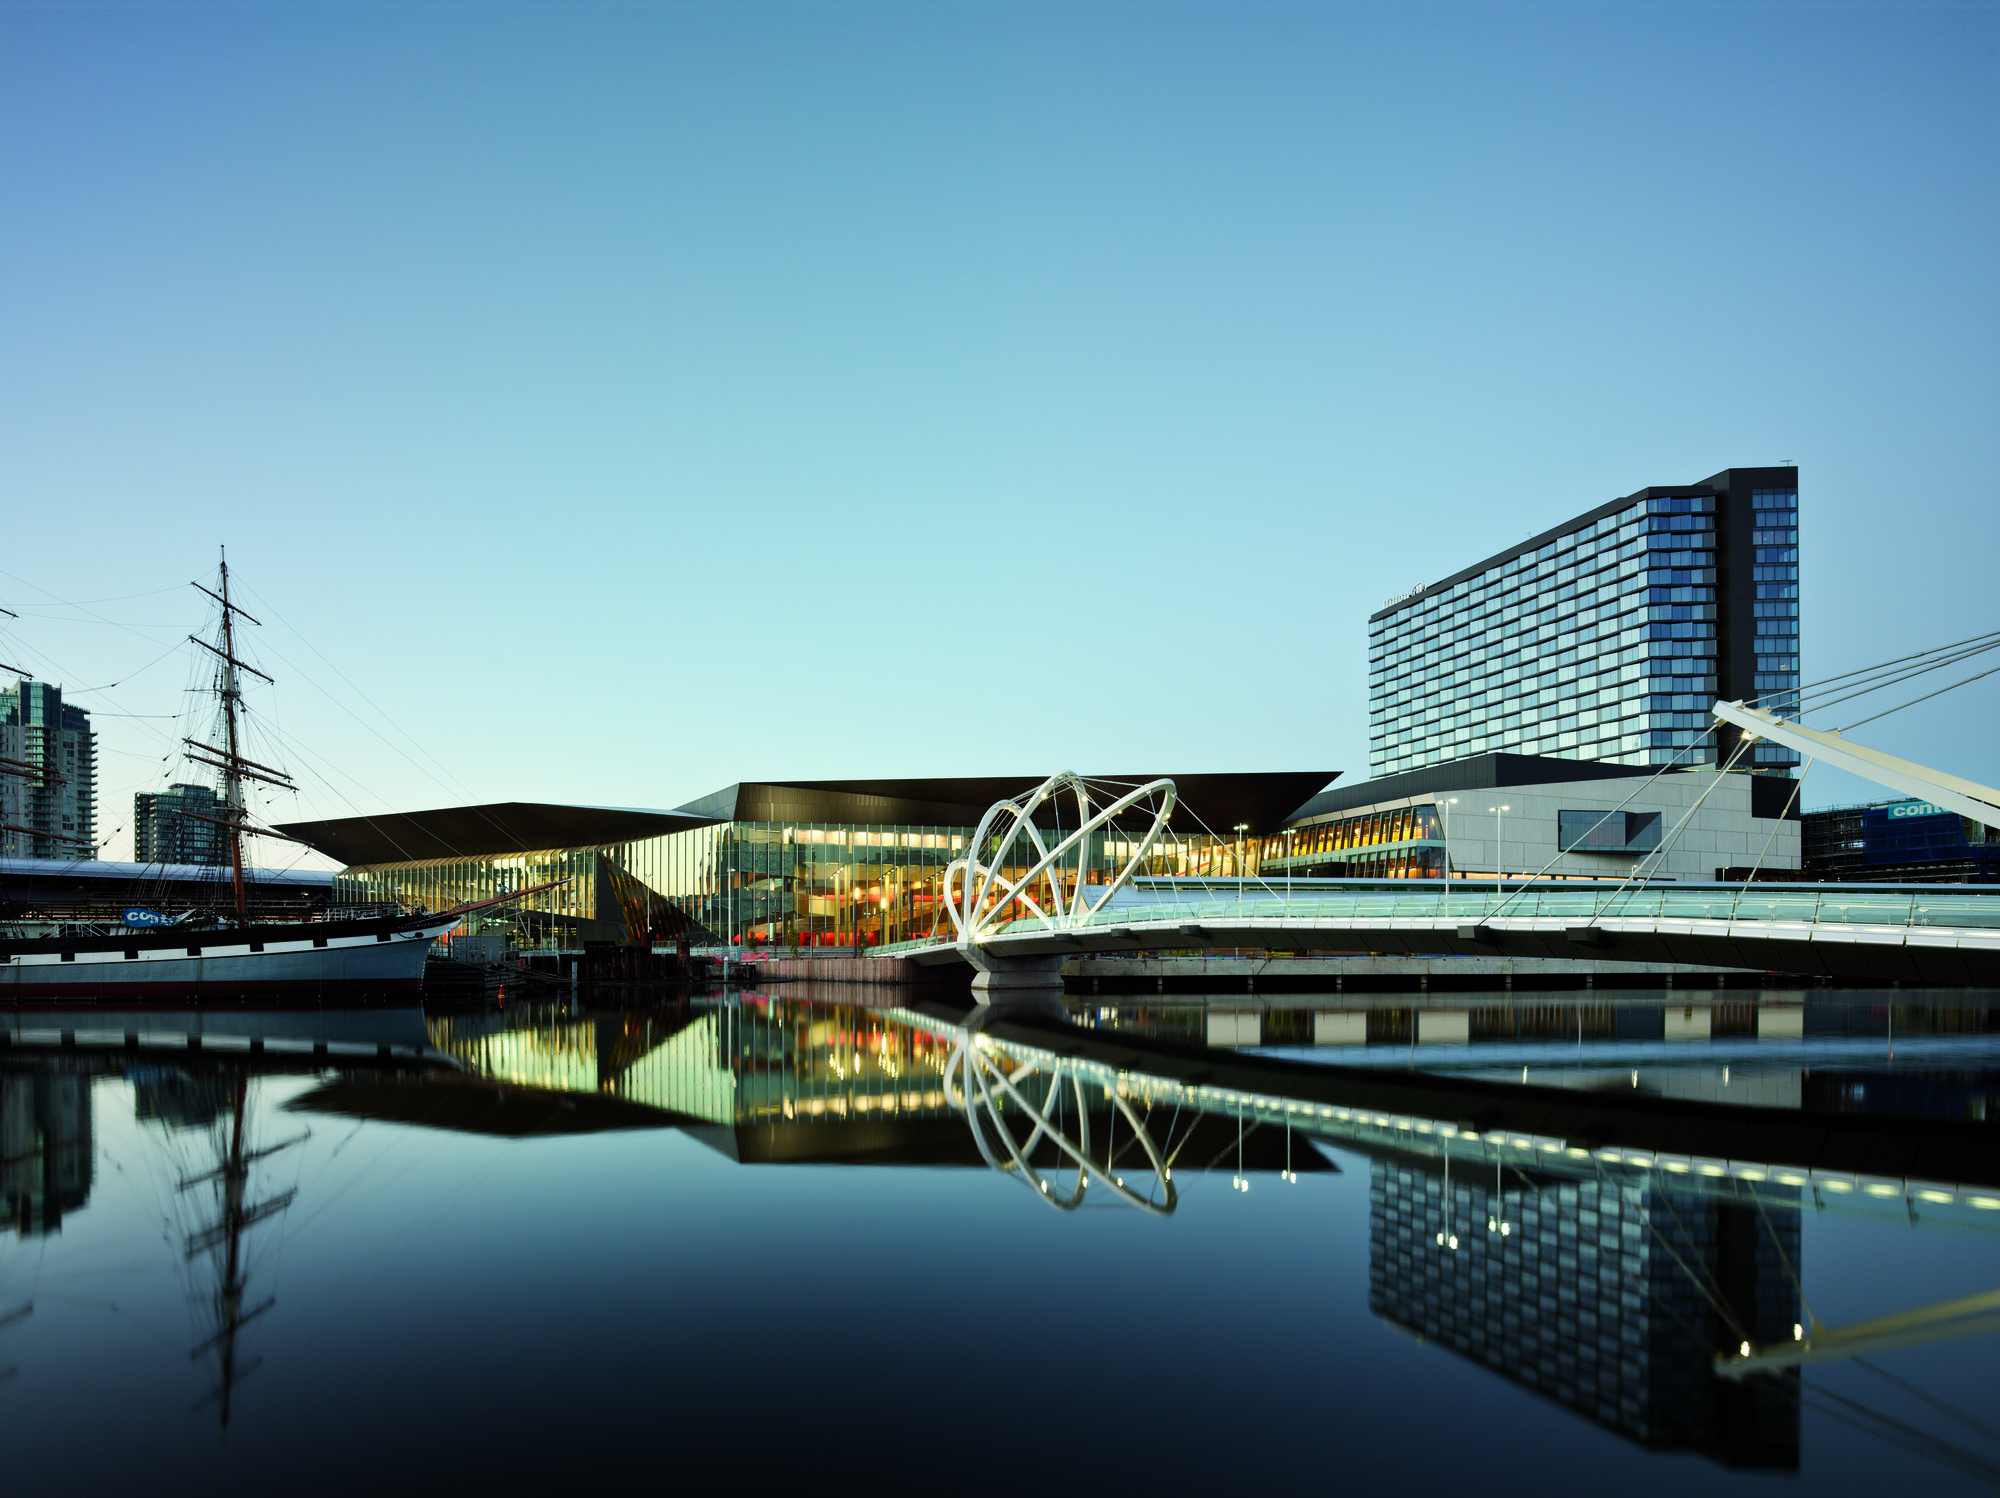 Melbourne Convention and Exhibition Centre / Woods Bagot, Courtesy of Woods Bagot